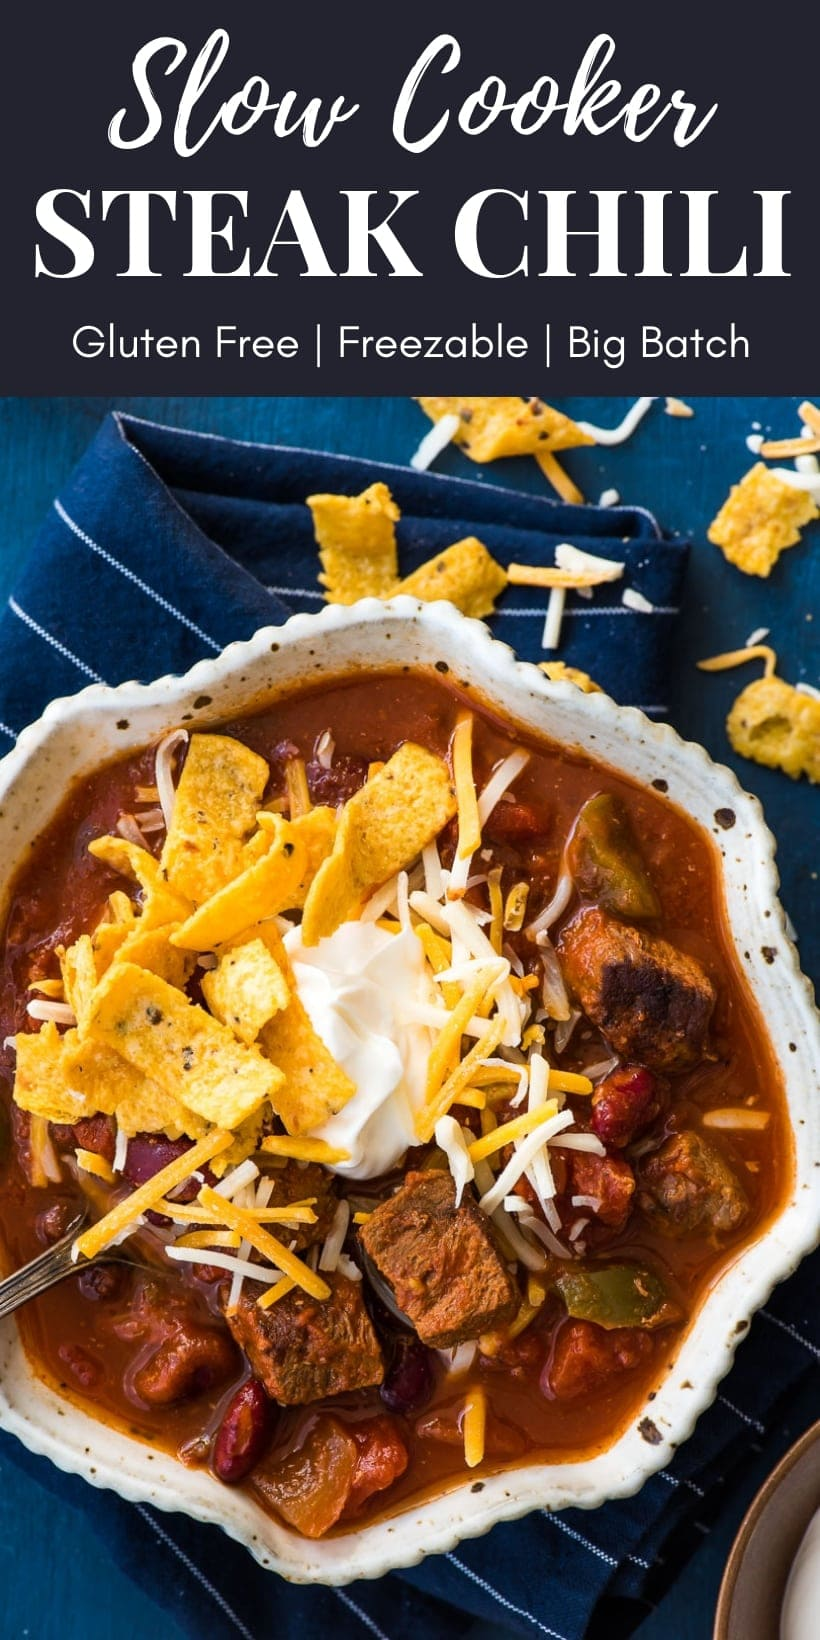 Slow Cooker Steak Chili topped with sour cream, cheese, and fritos.